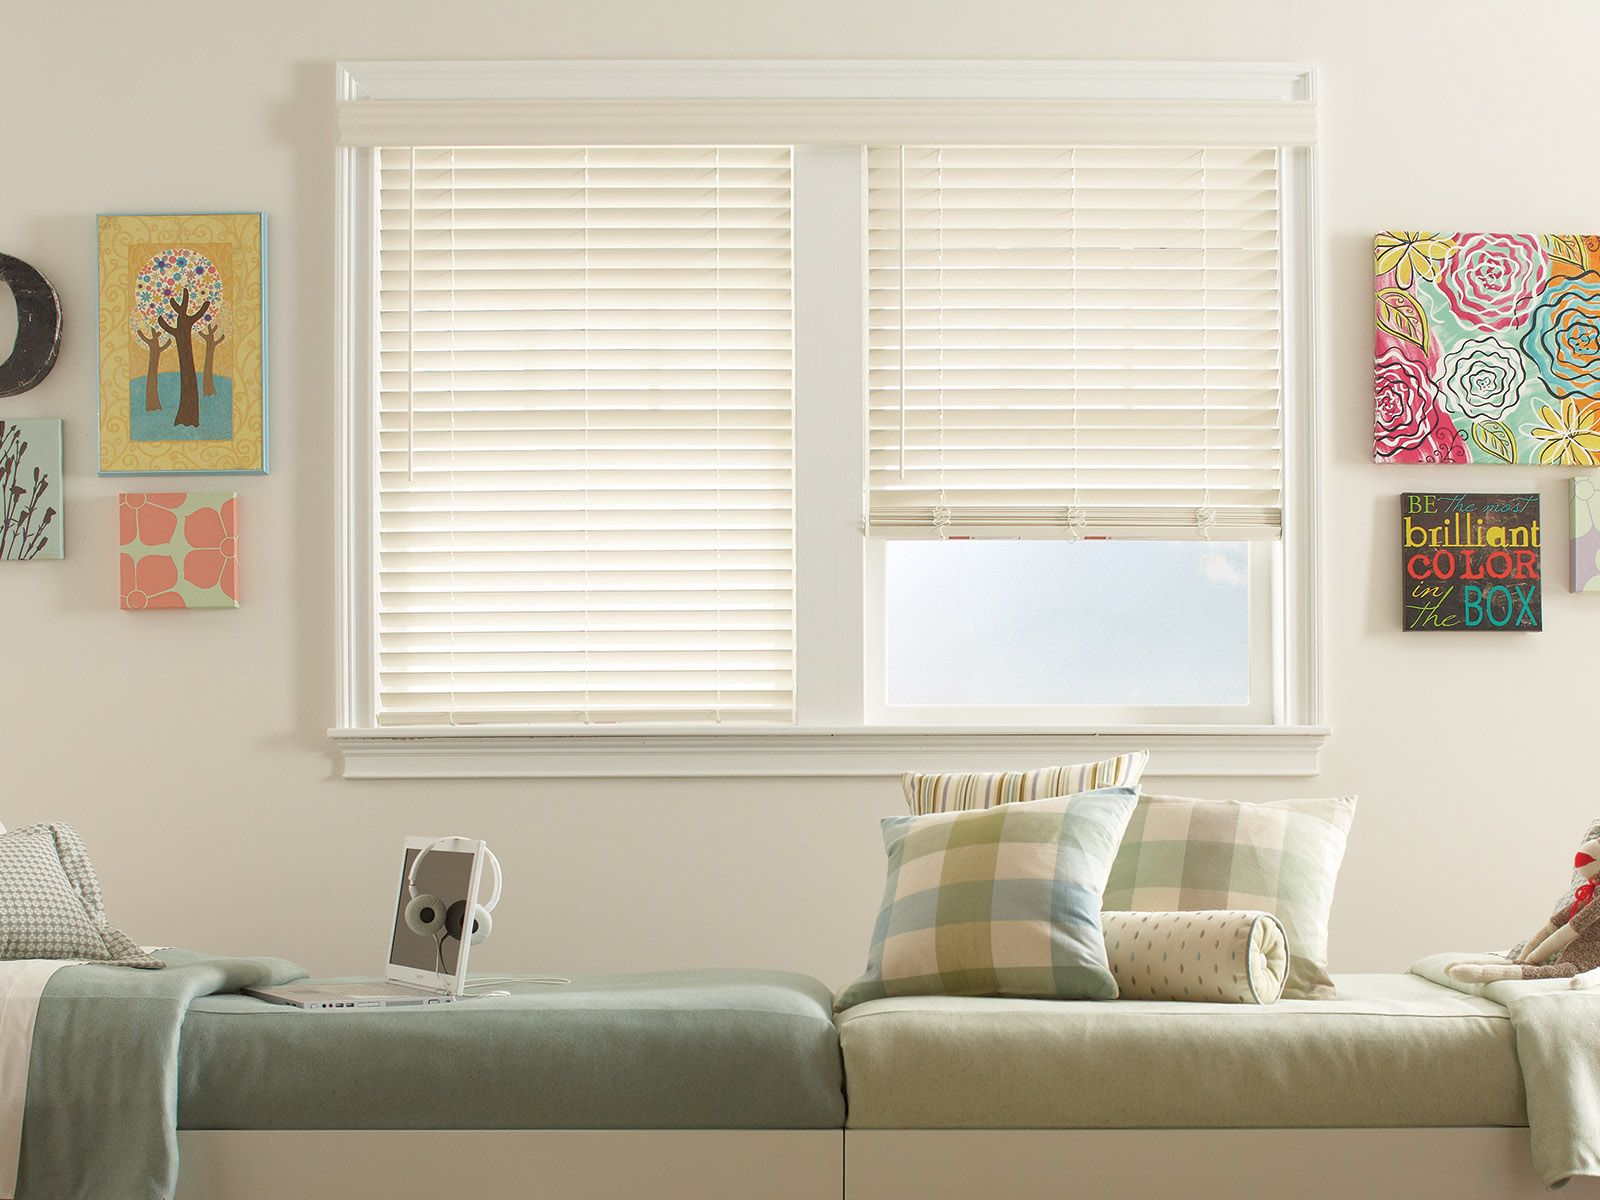 Window coverings to block sun  shades blinds drapes and shutters  lafayette interior fashions